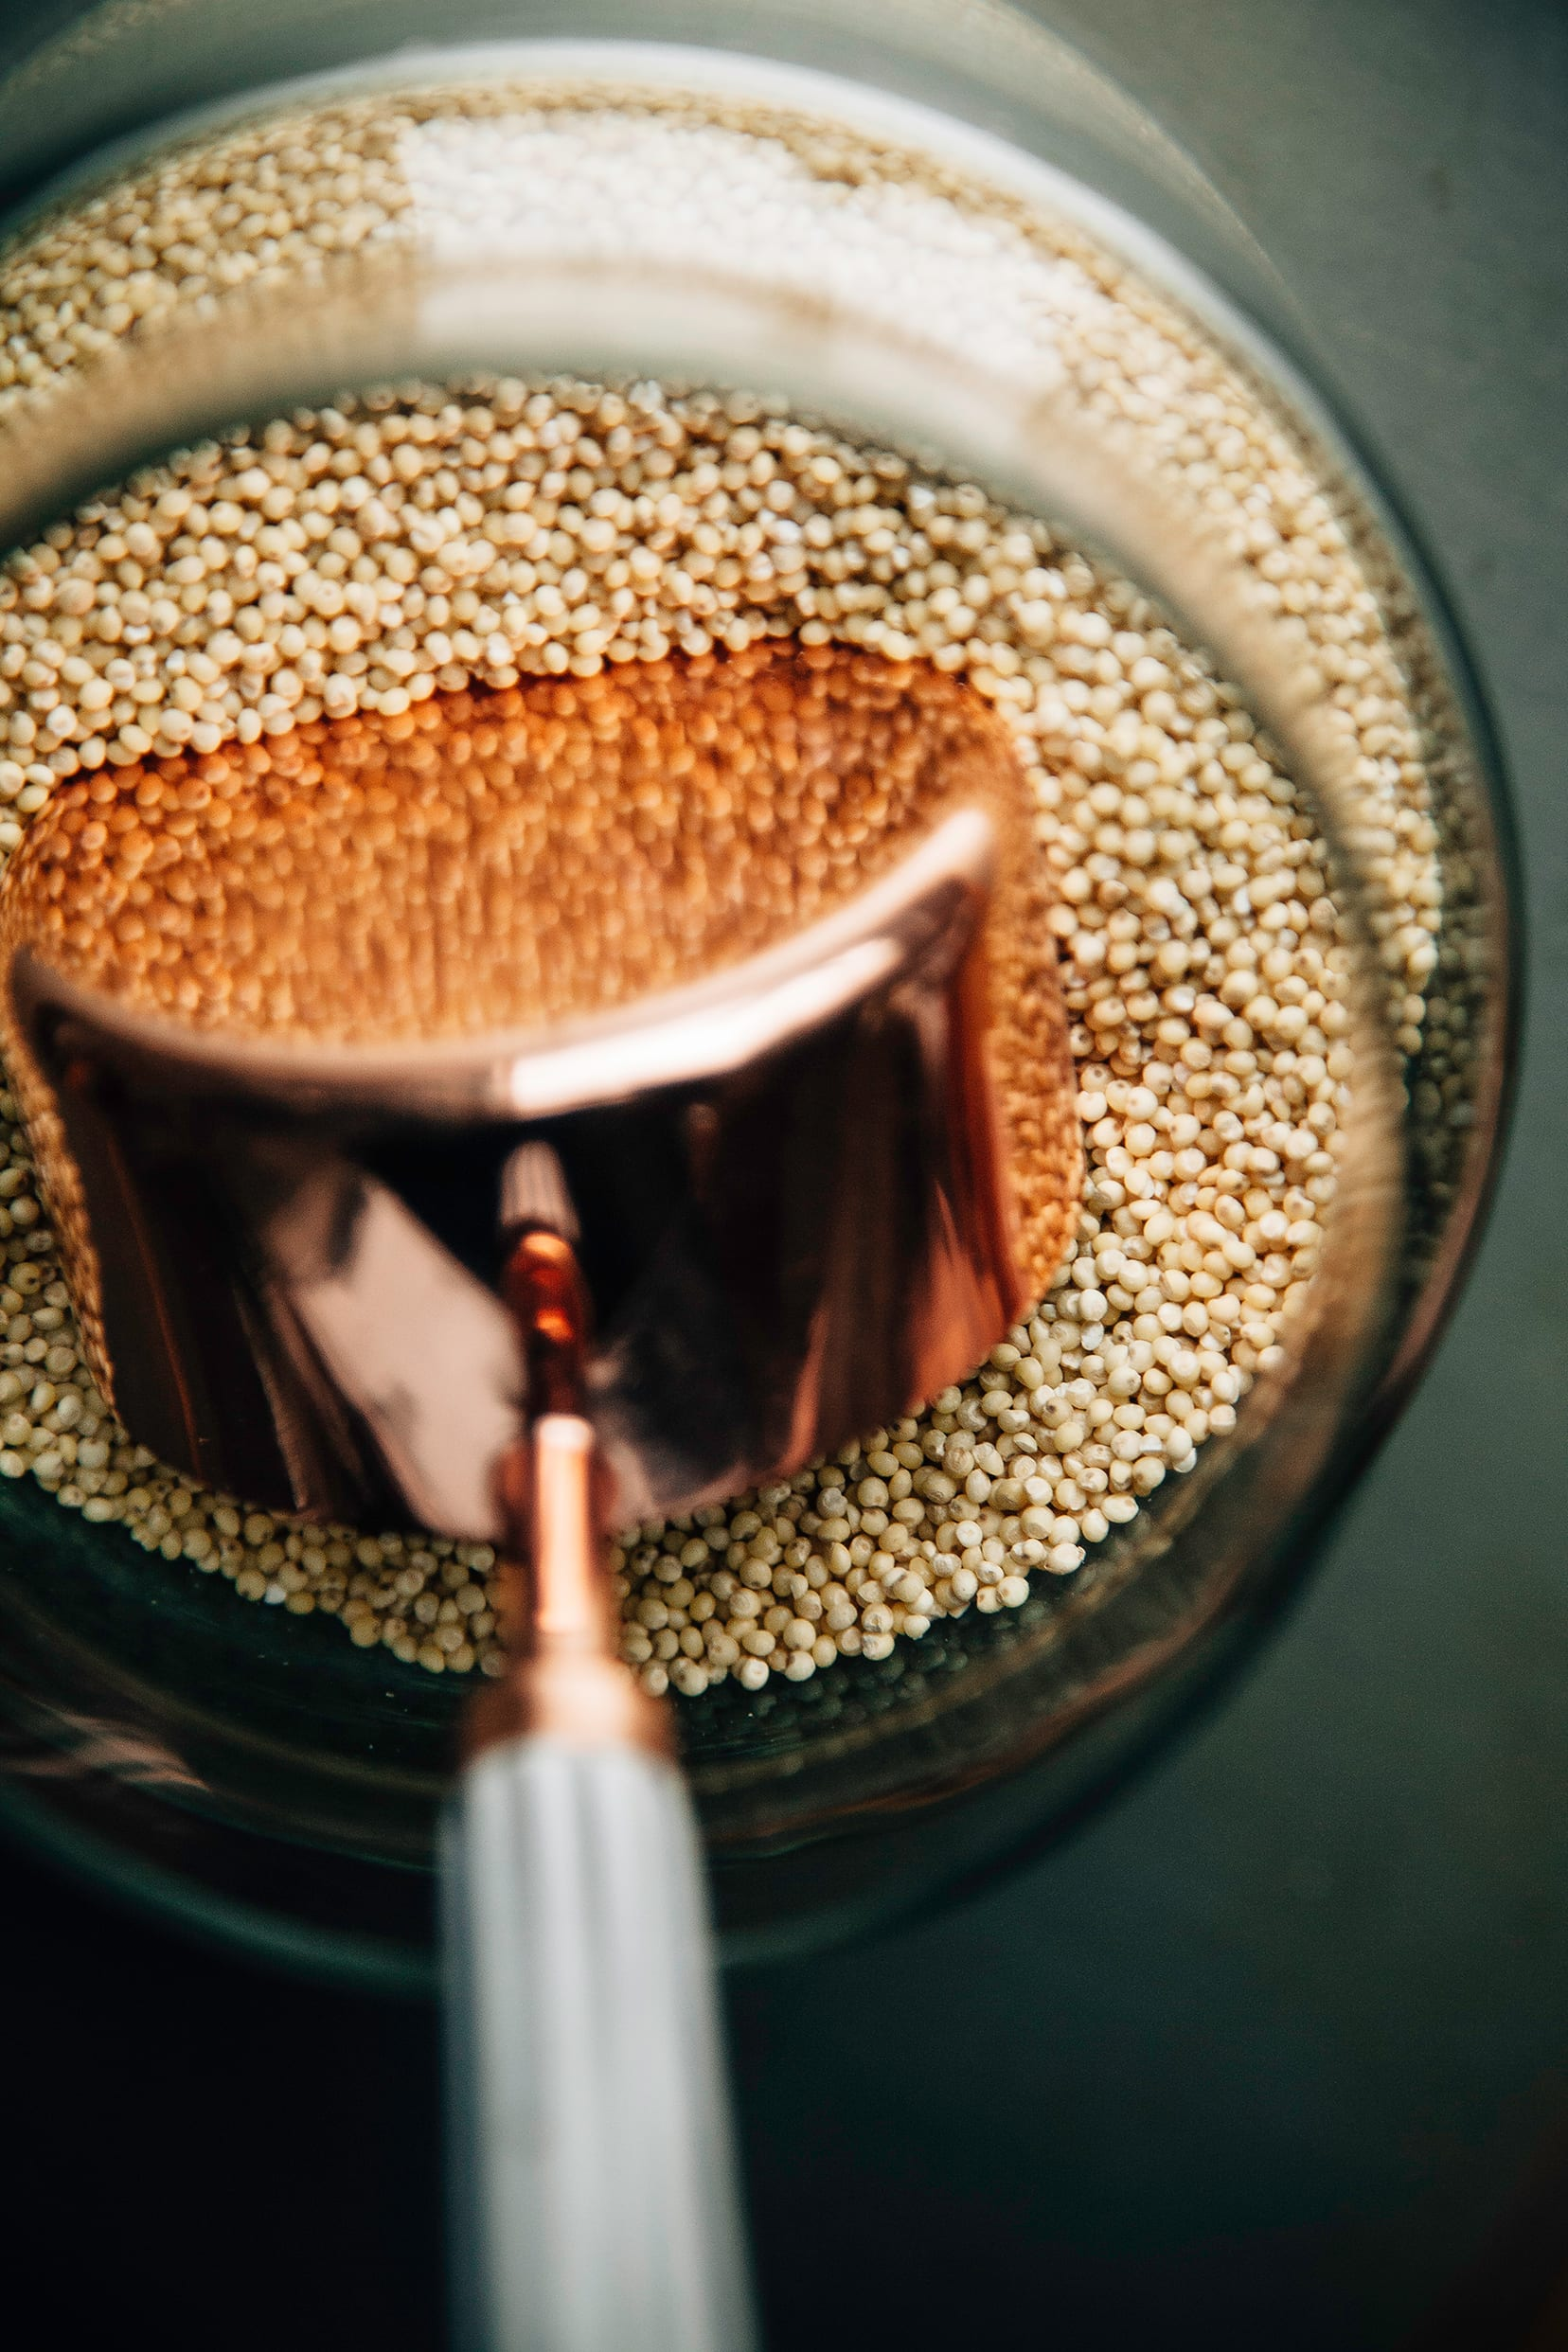 An up close overhead image of a bronze measuring cup inside a jar of dry millet.